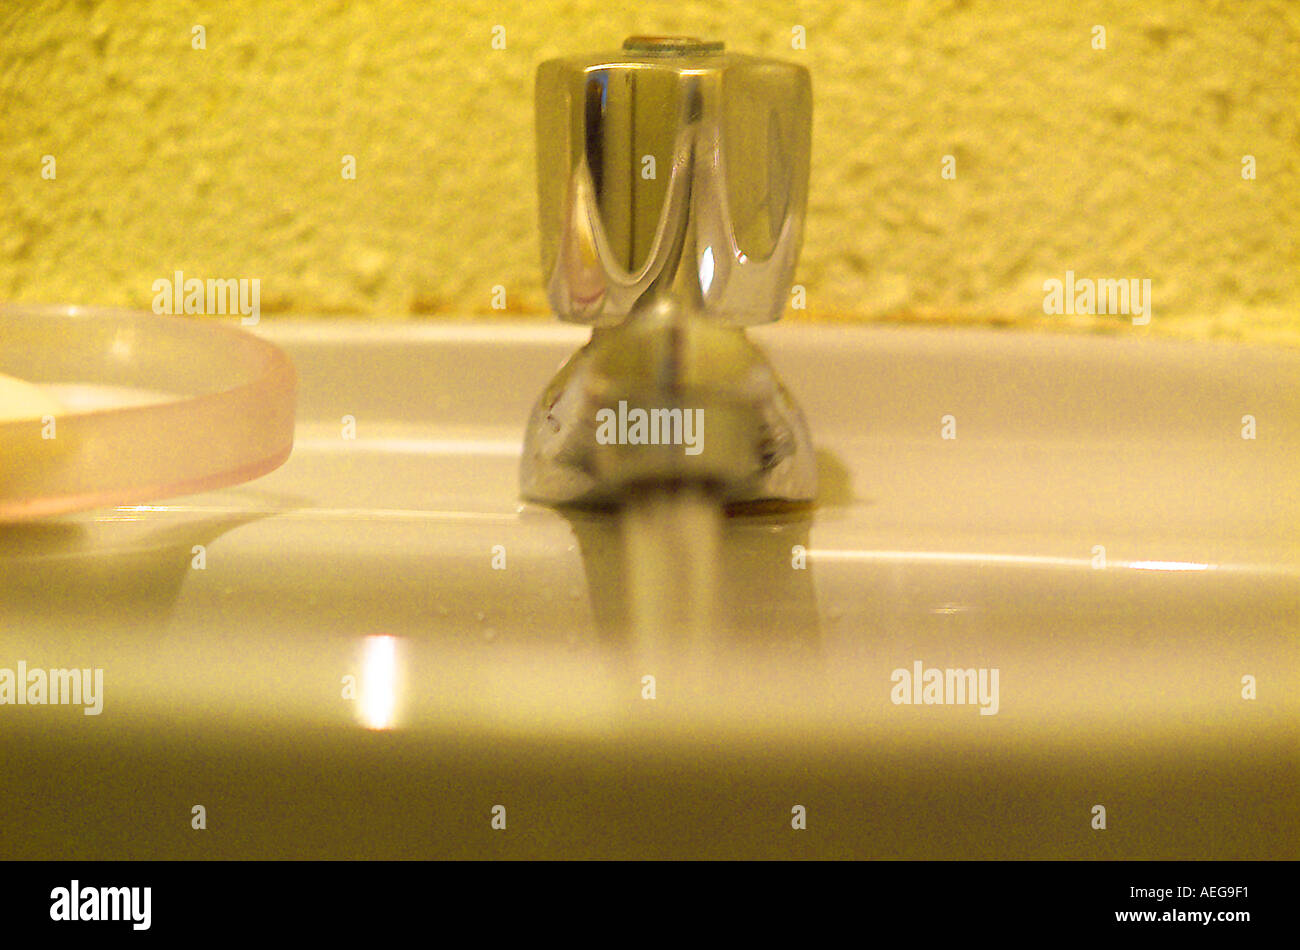 Sweet Home tap faucet running water wall yellow chrome metal ...